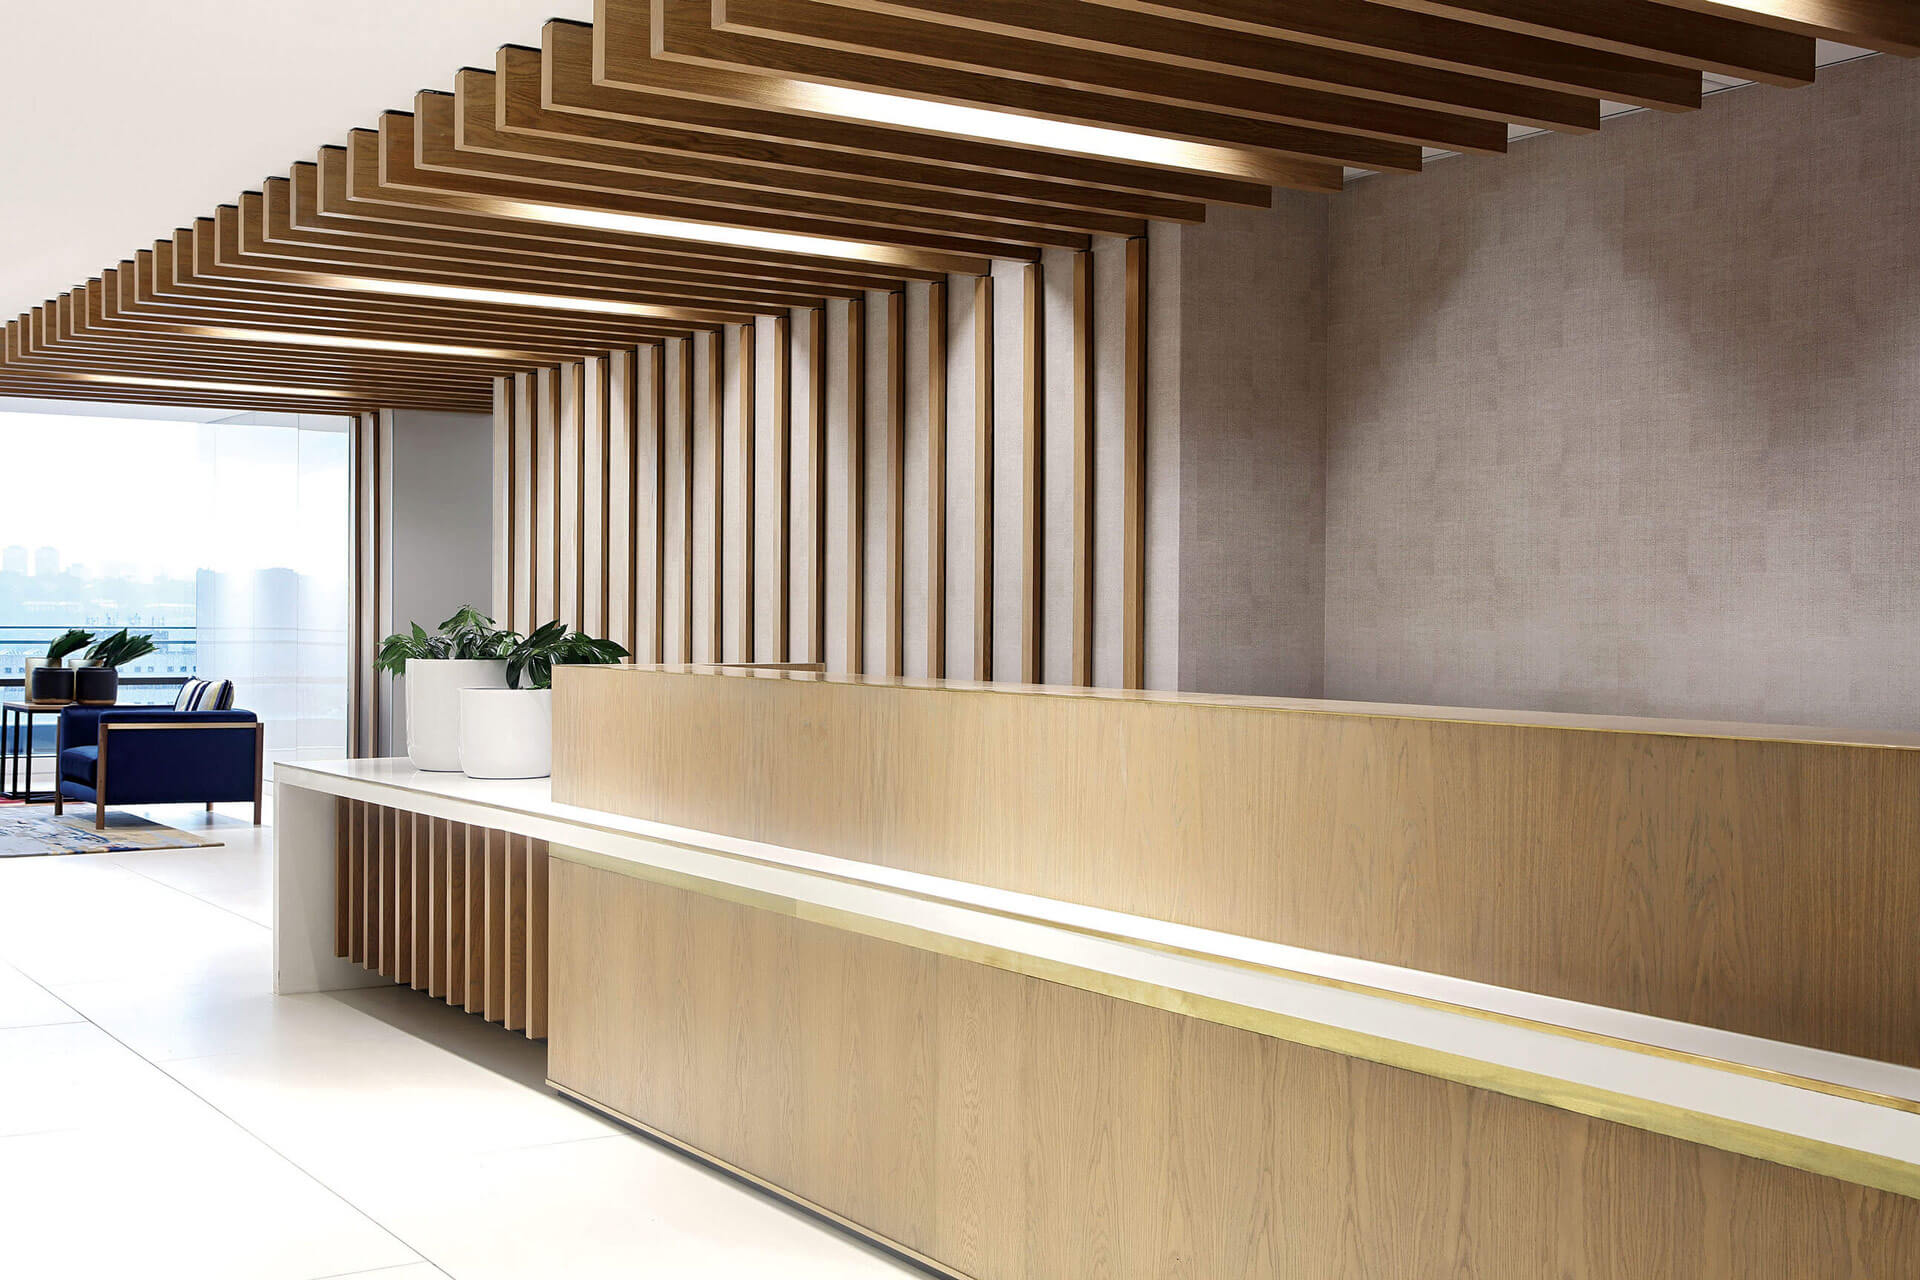 New offices for a lawfirm